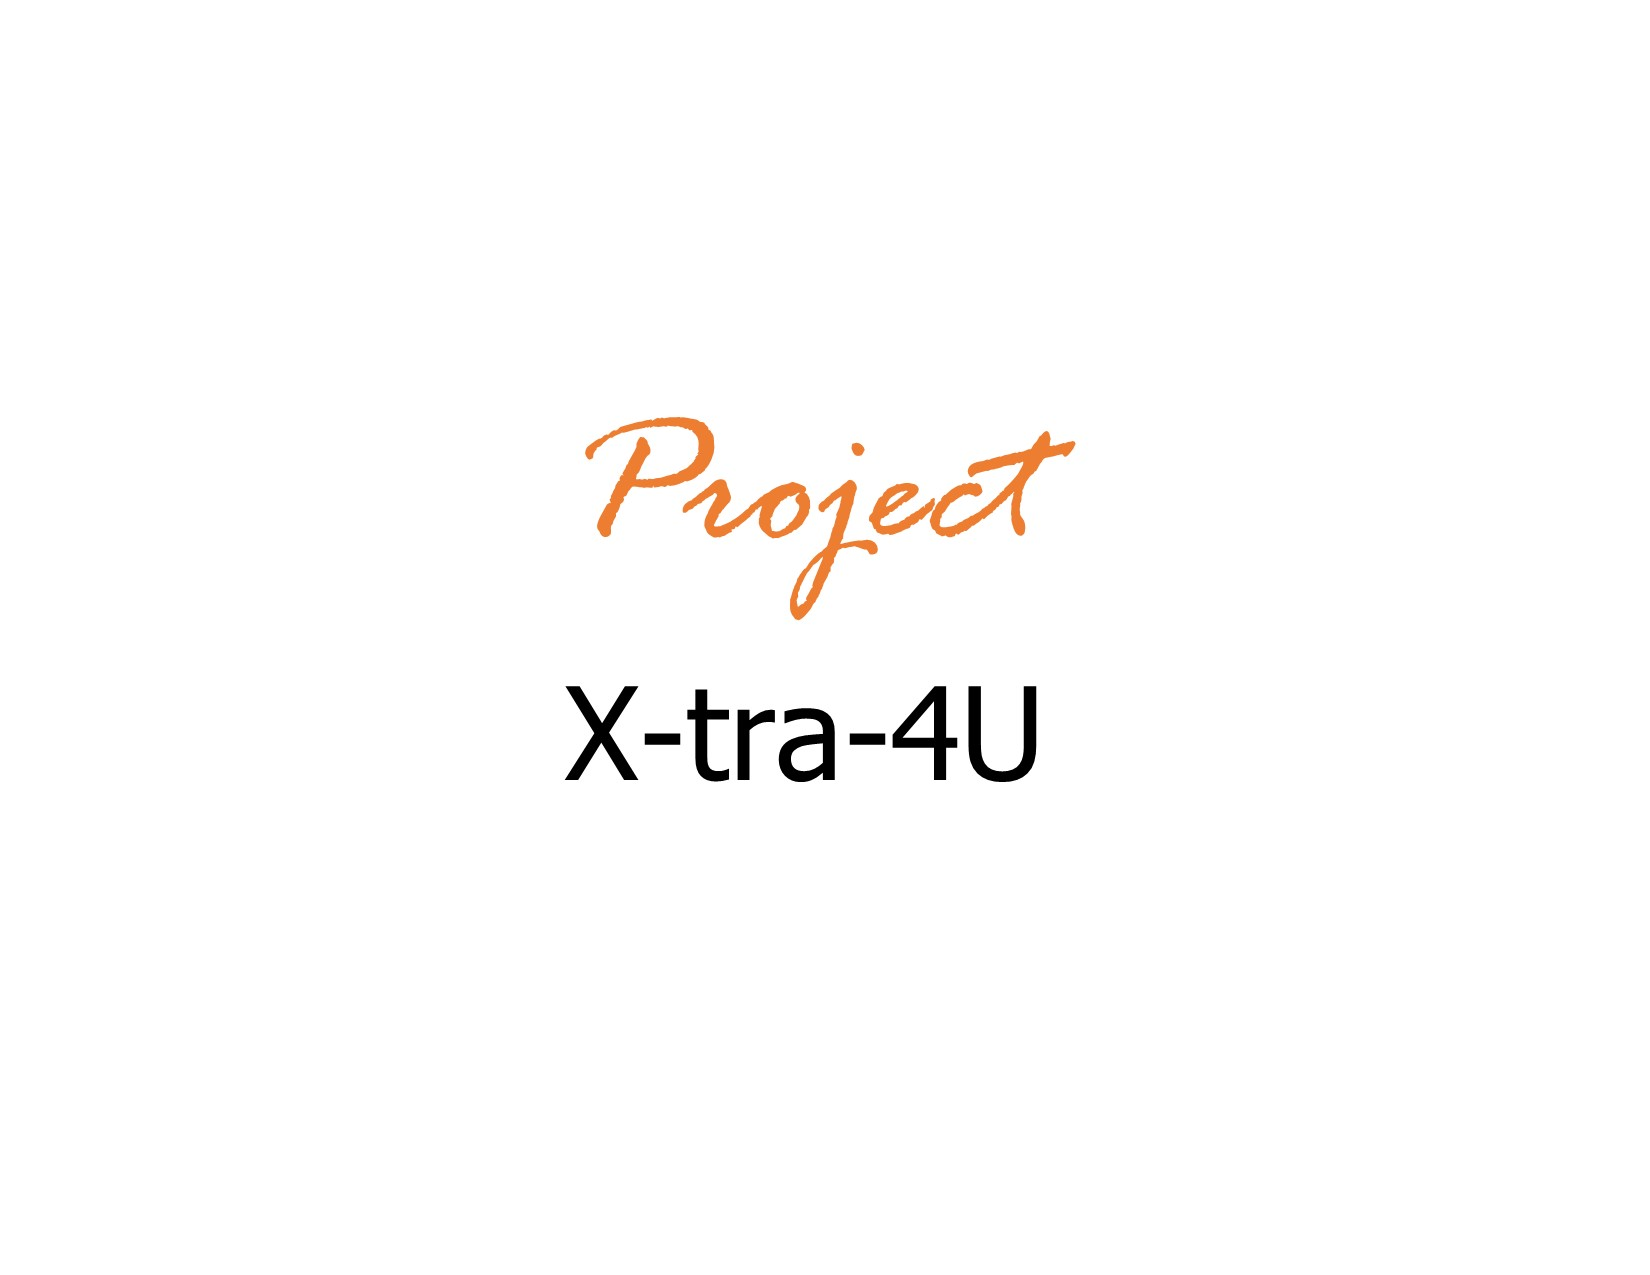 Project X-tra-4U - What happens when hungry kids graduate from Elementary to Middle and High School? Very often, they are still going hungry. Project Xtra4U supports teachers and staff at New Buffalo Middle and High School by providing snacks for any student who is hungry.